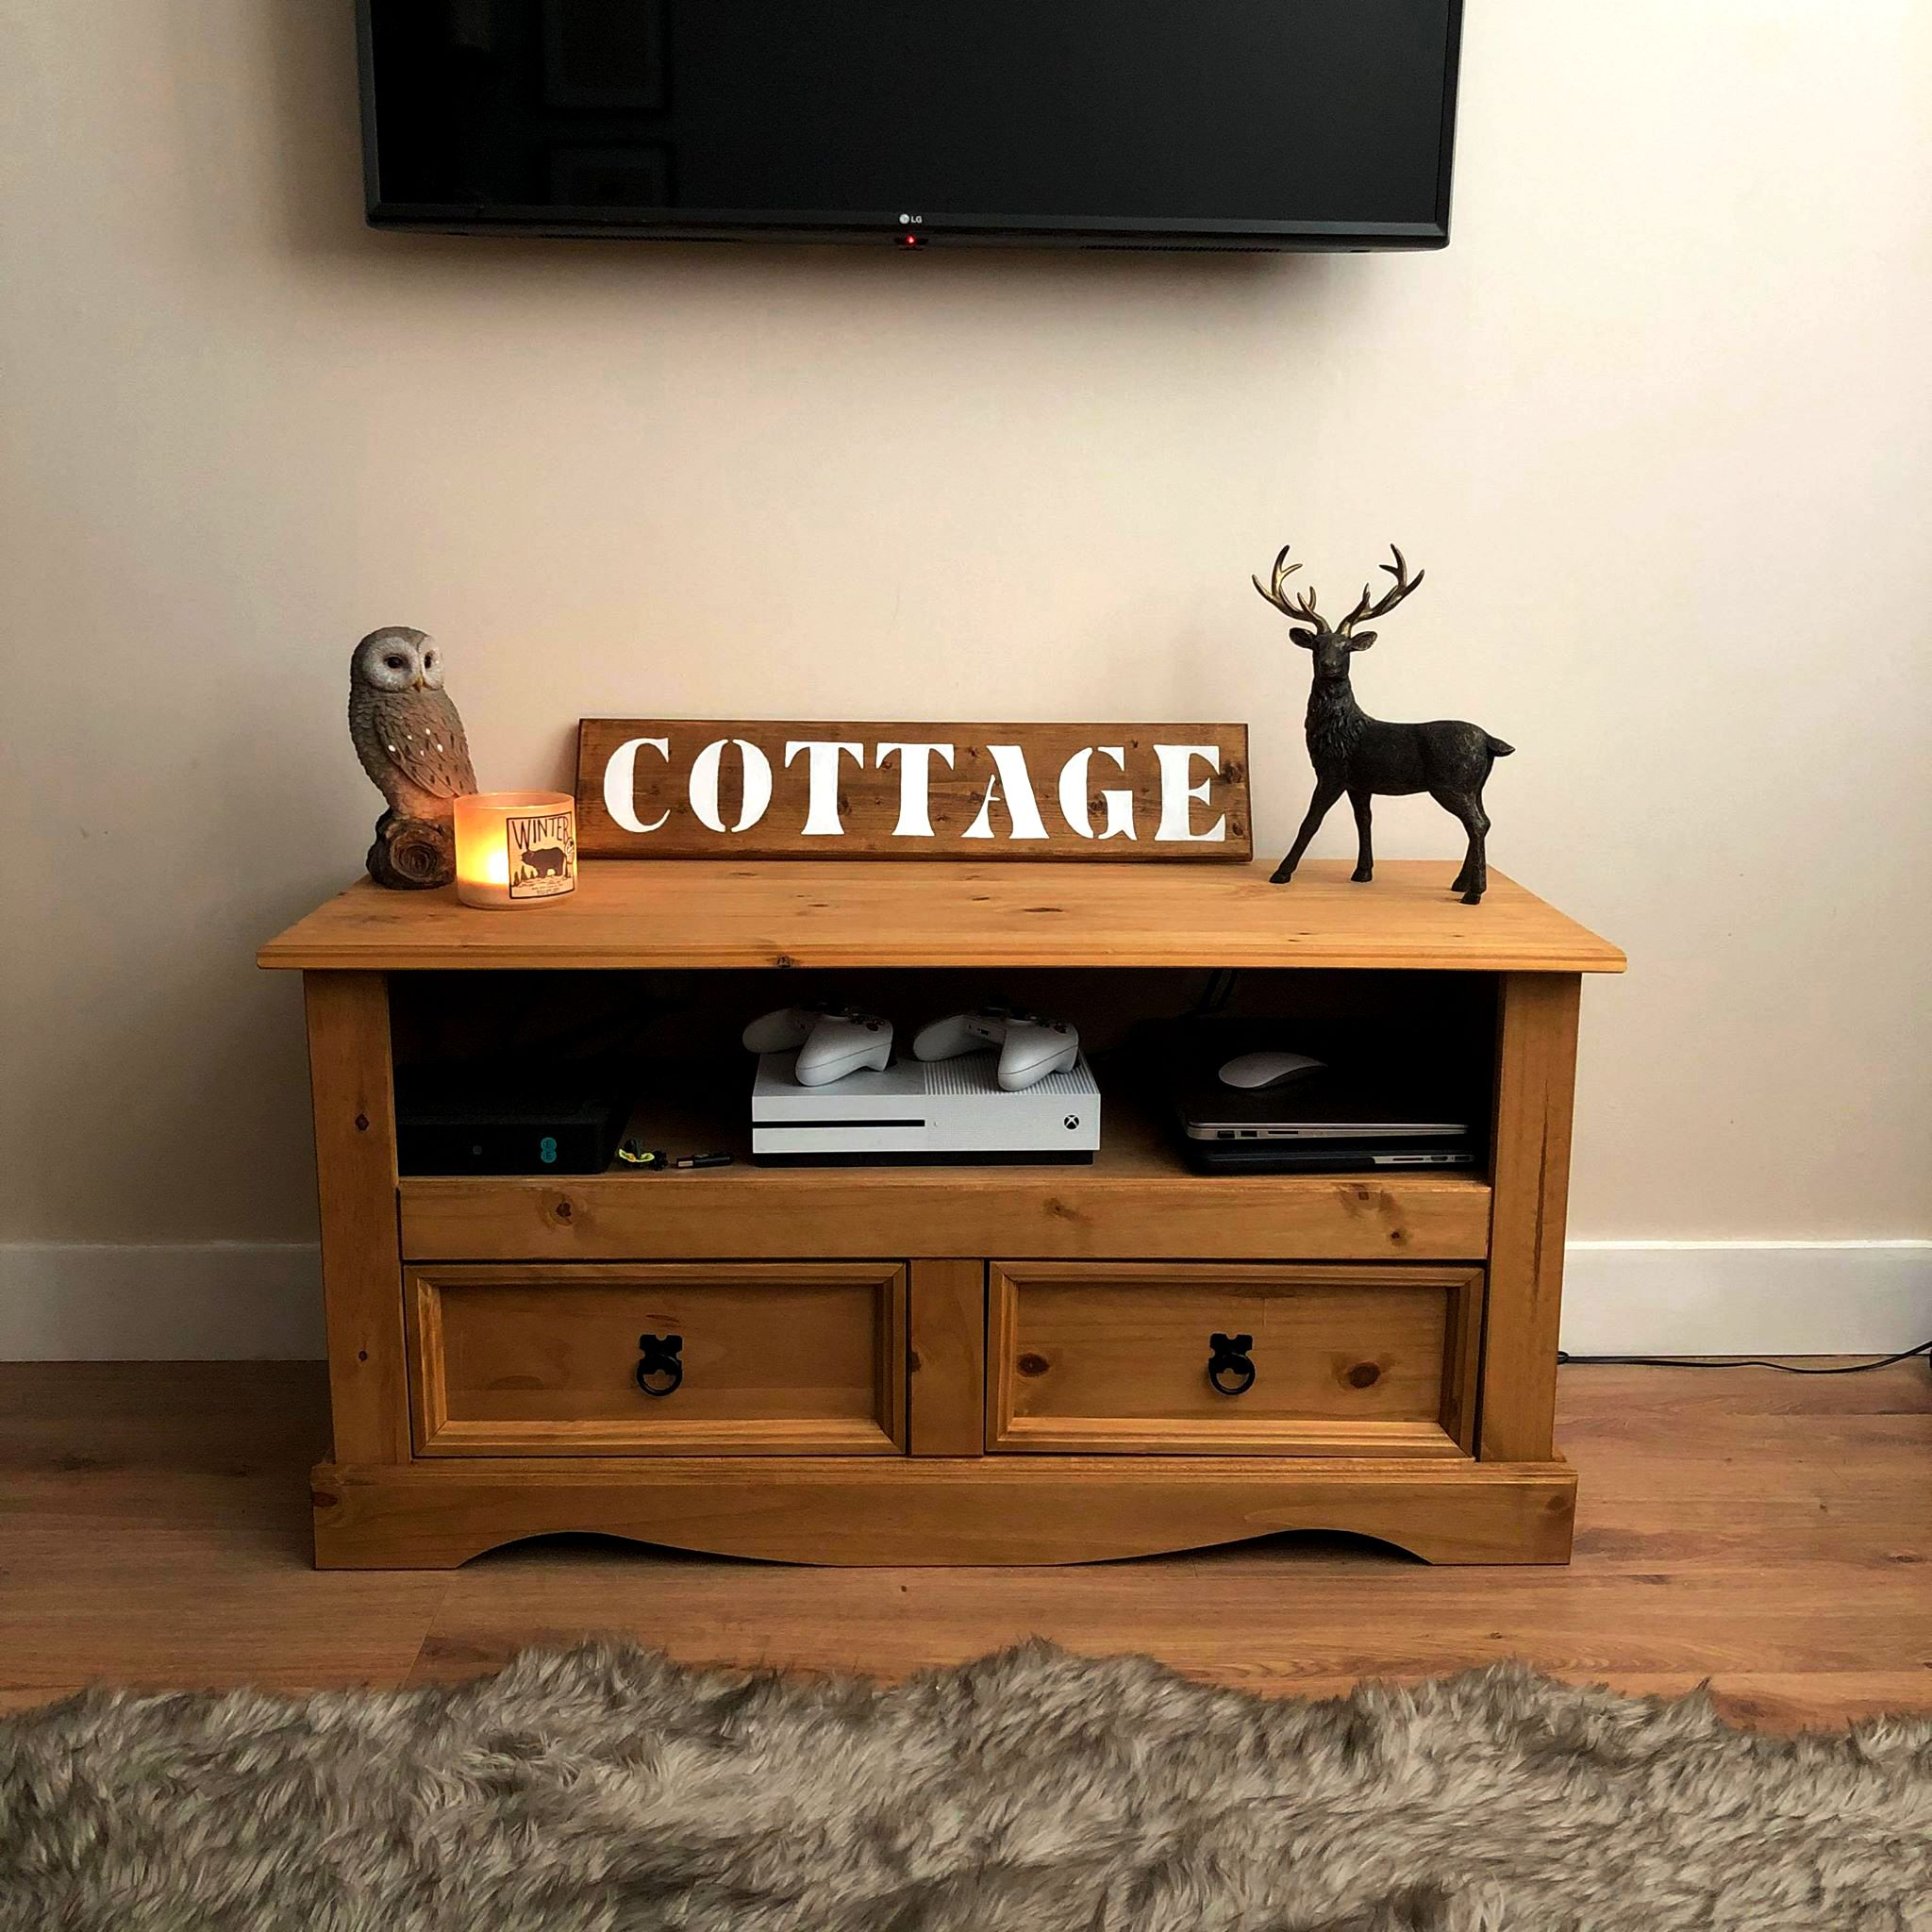 Do you want to give your home a cottage aesthetic? This Cottage Sign will make the cut. It's made out of wood, that was manually antiquated. The font has a vintage effect, and we hand painted every letter. More details on our Etsy Shop! #countryhomesign #rustichomedecor #rusticdecorforhome #cottagedecor #cottagehomedecor #cottageroom #cottagedecorrustic #rusticottage #woodsignforhome #paintedwoodsigns #homedecorwoodsigns #decorativewoodsigns #craftedgifts #homegifts #giftideas #halldecorideas